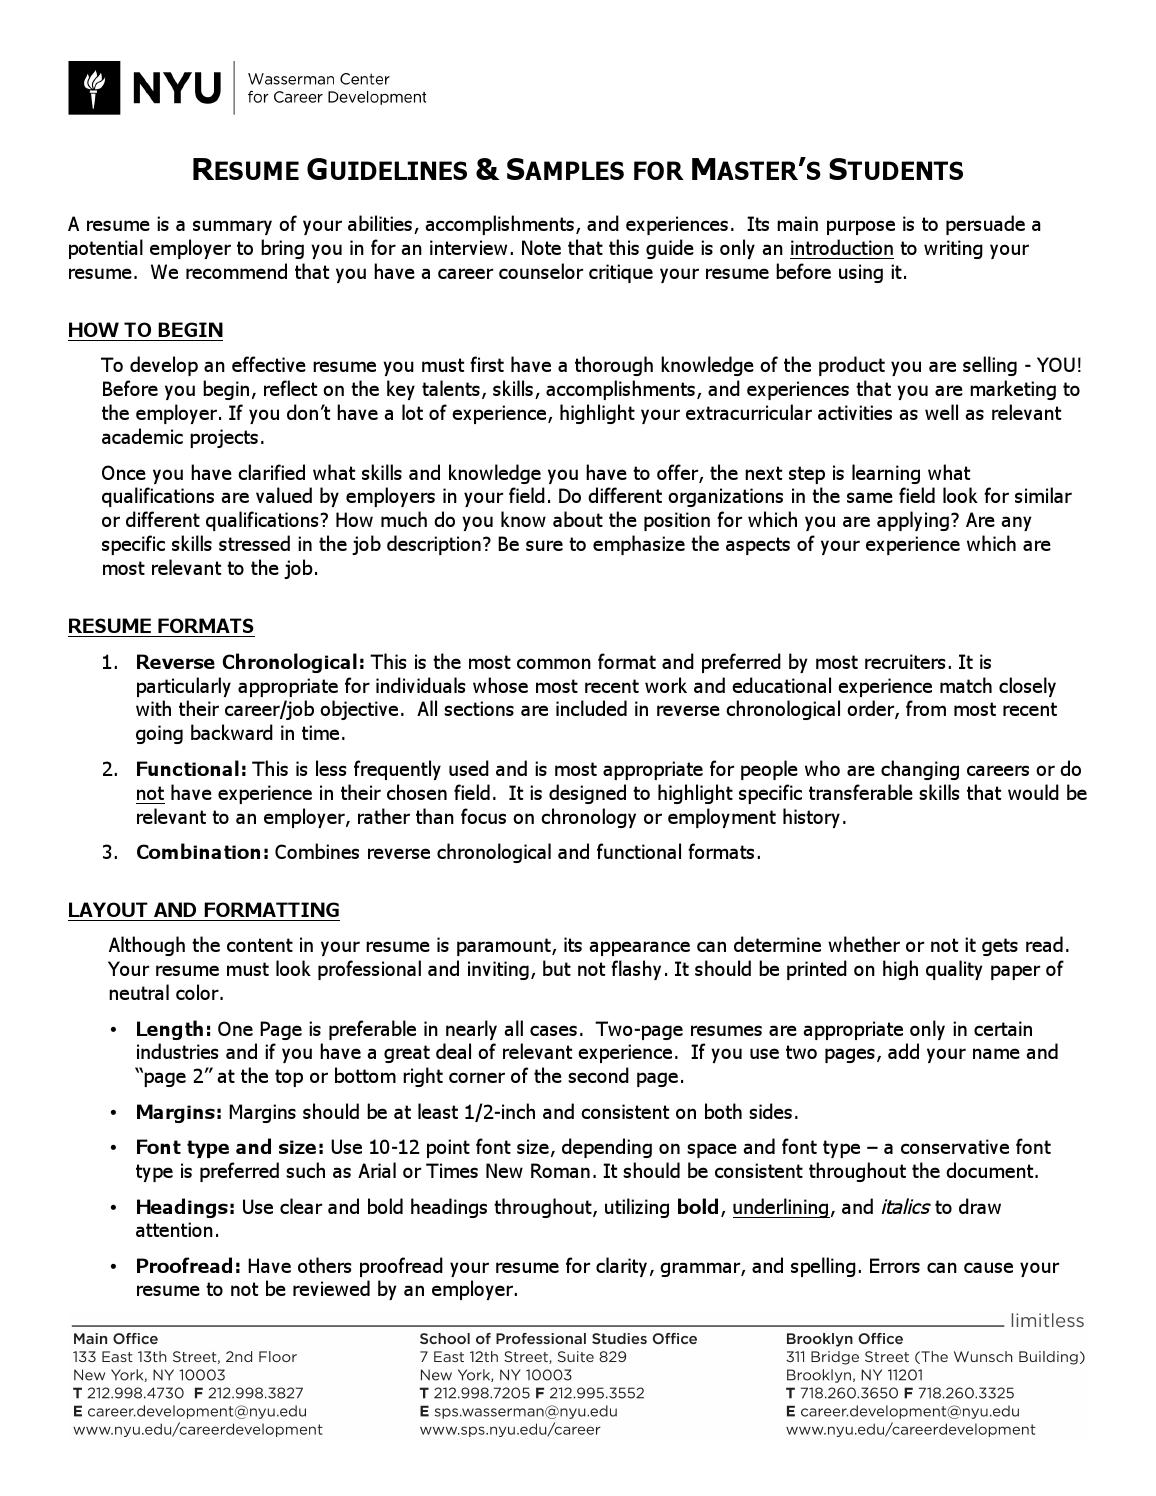 Graduate Student Resume Guide By Center For Urban Science And